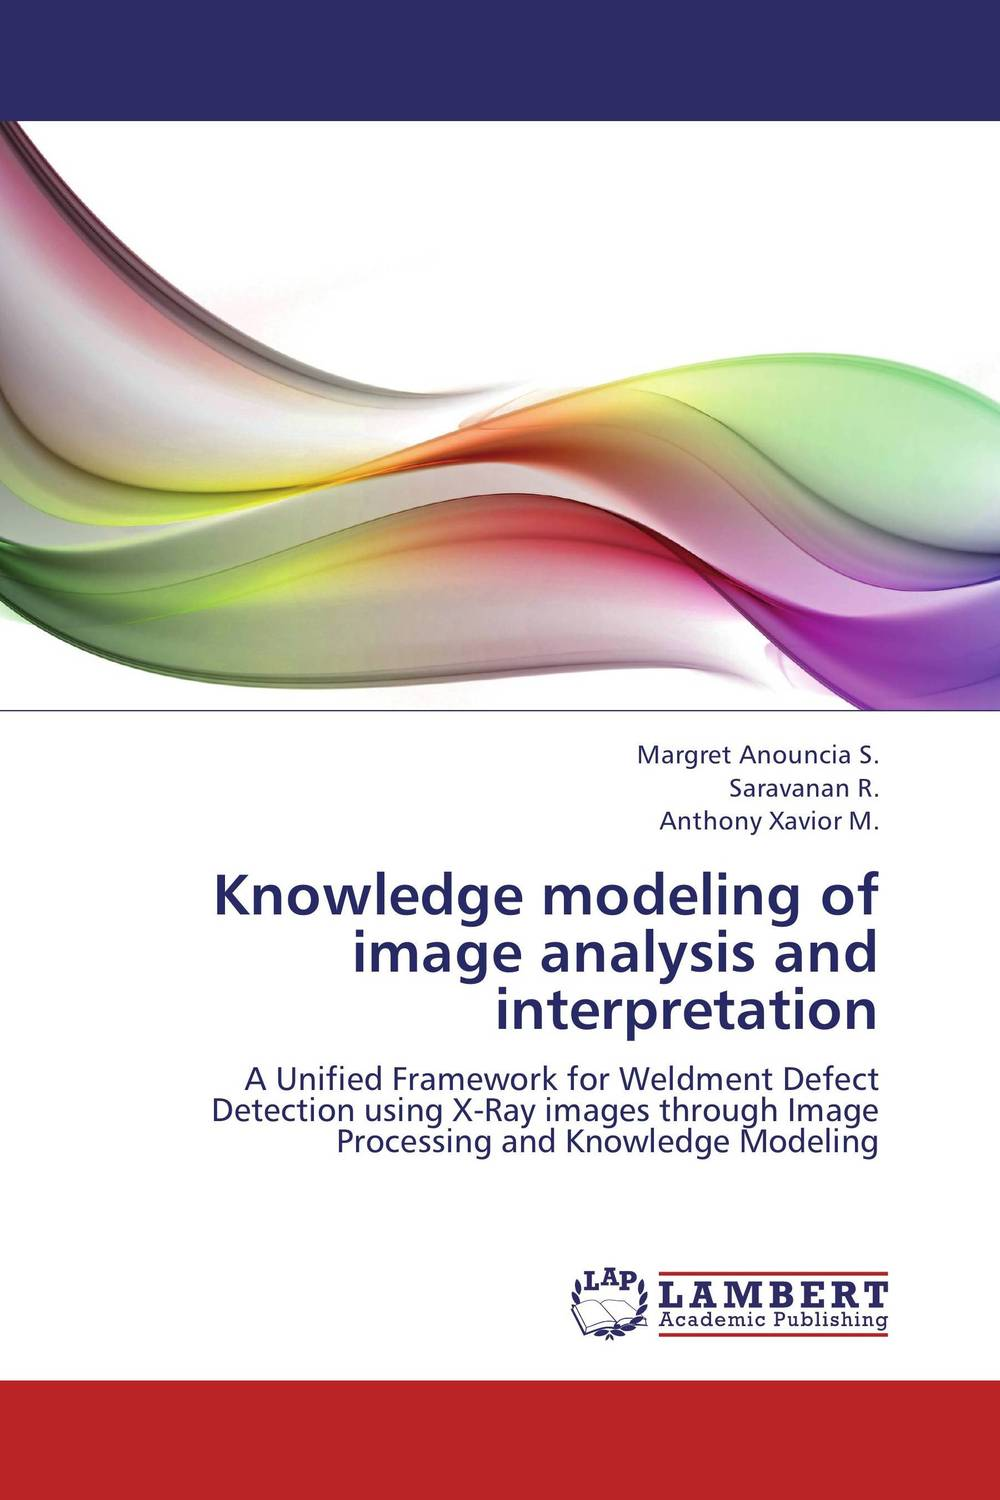 Knowledge modeling of image analysis and interpretation